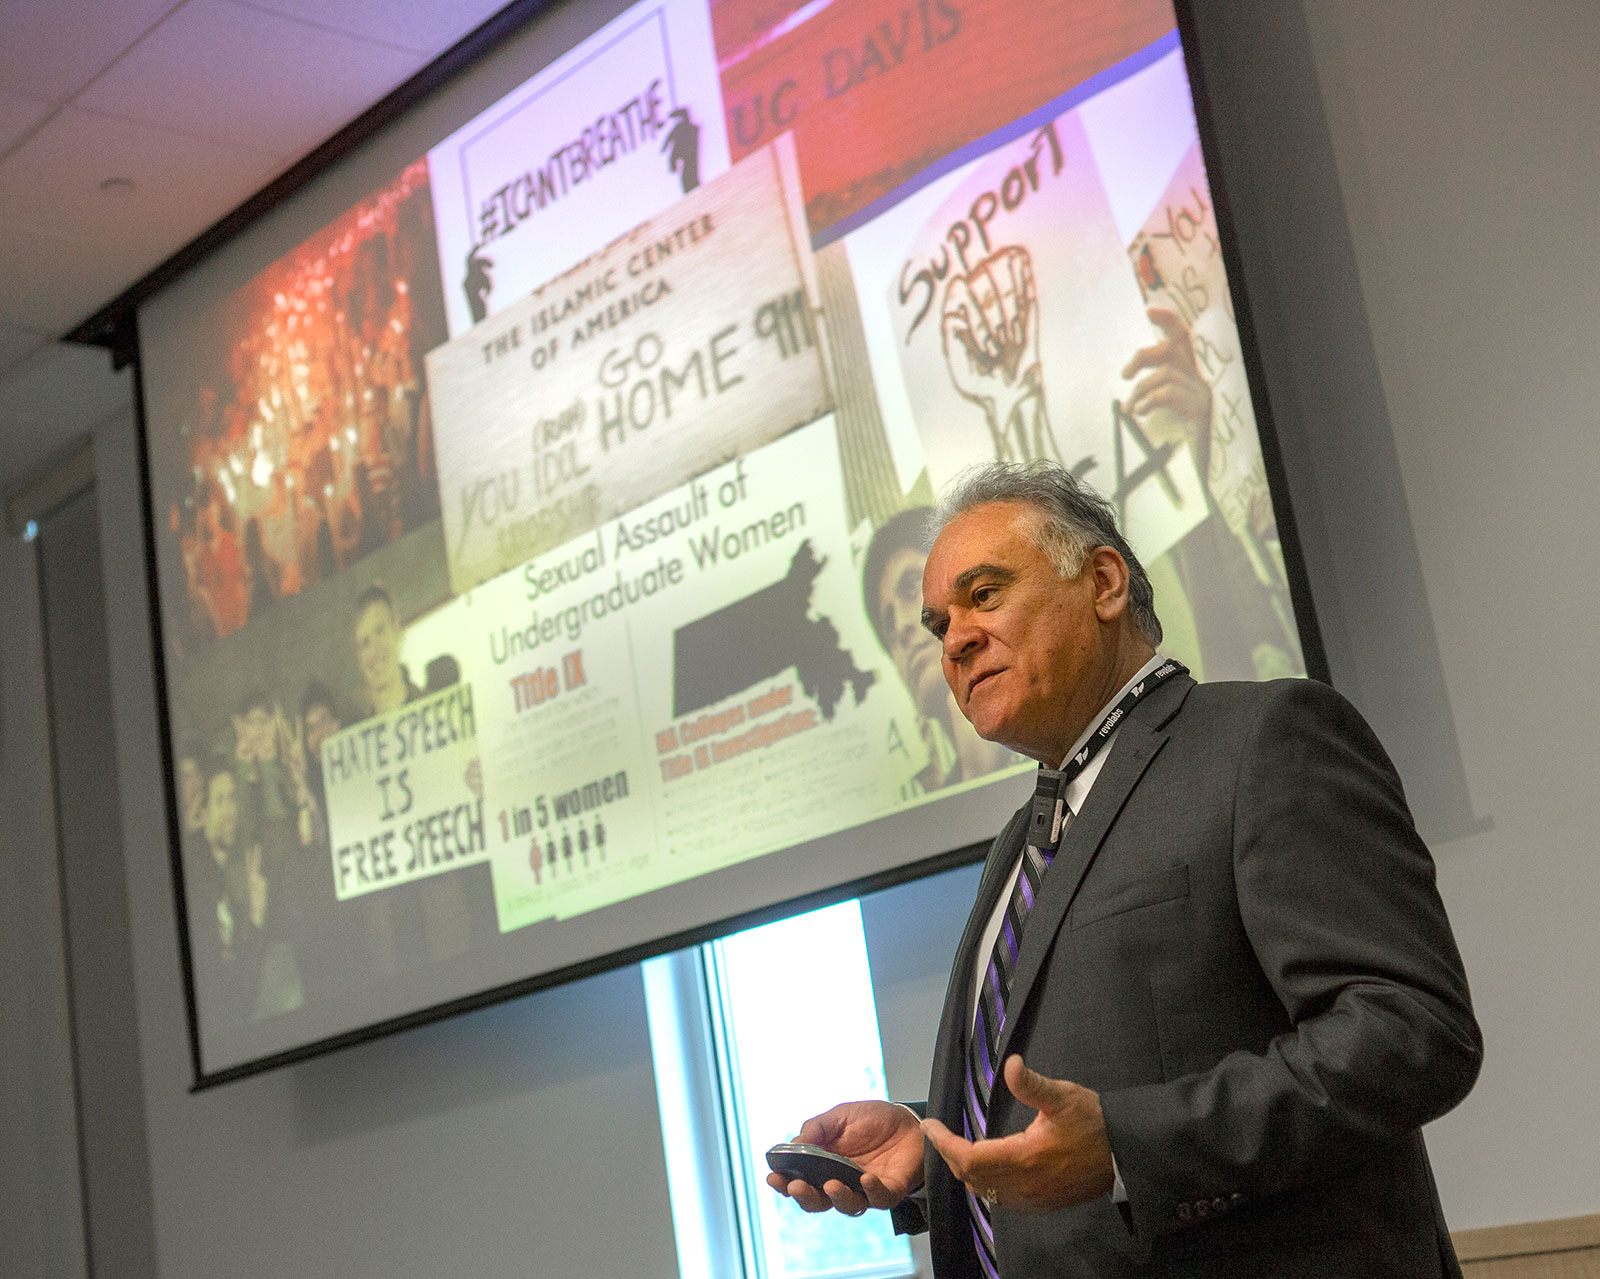 David Acosta, chief diversity officer with the AAMC, is pictured speaking at an event in August 2018 at Penn State College of Medicine in Hershey, PA. Acosta is seen in the foreground with a large presentation screen behind him depicting images related to bias.